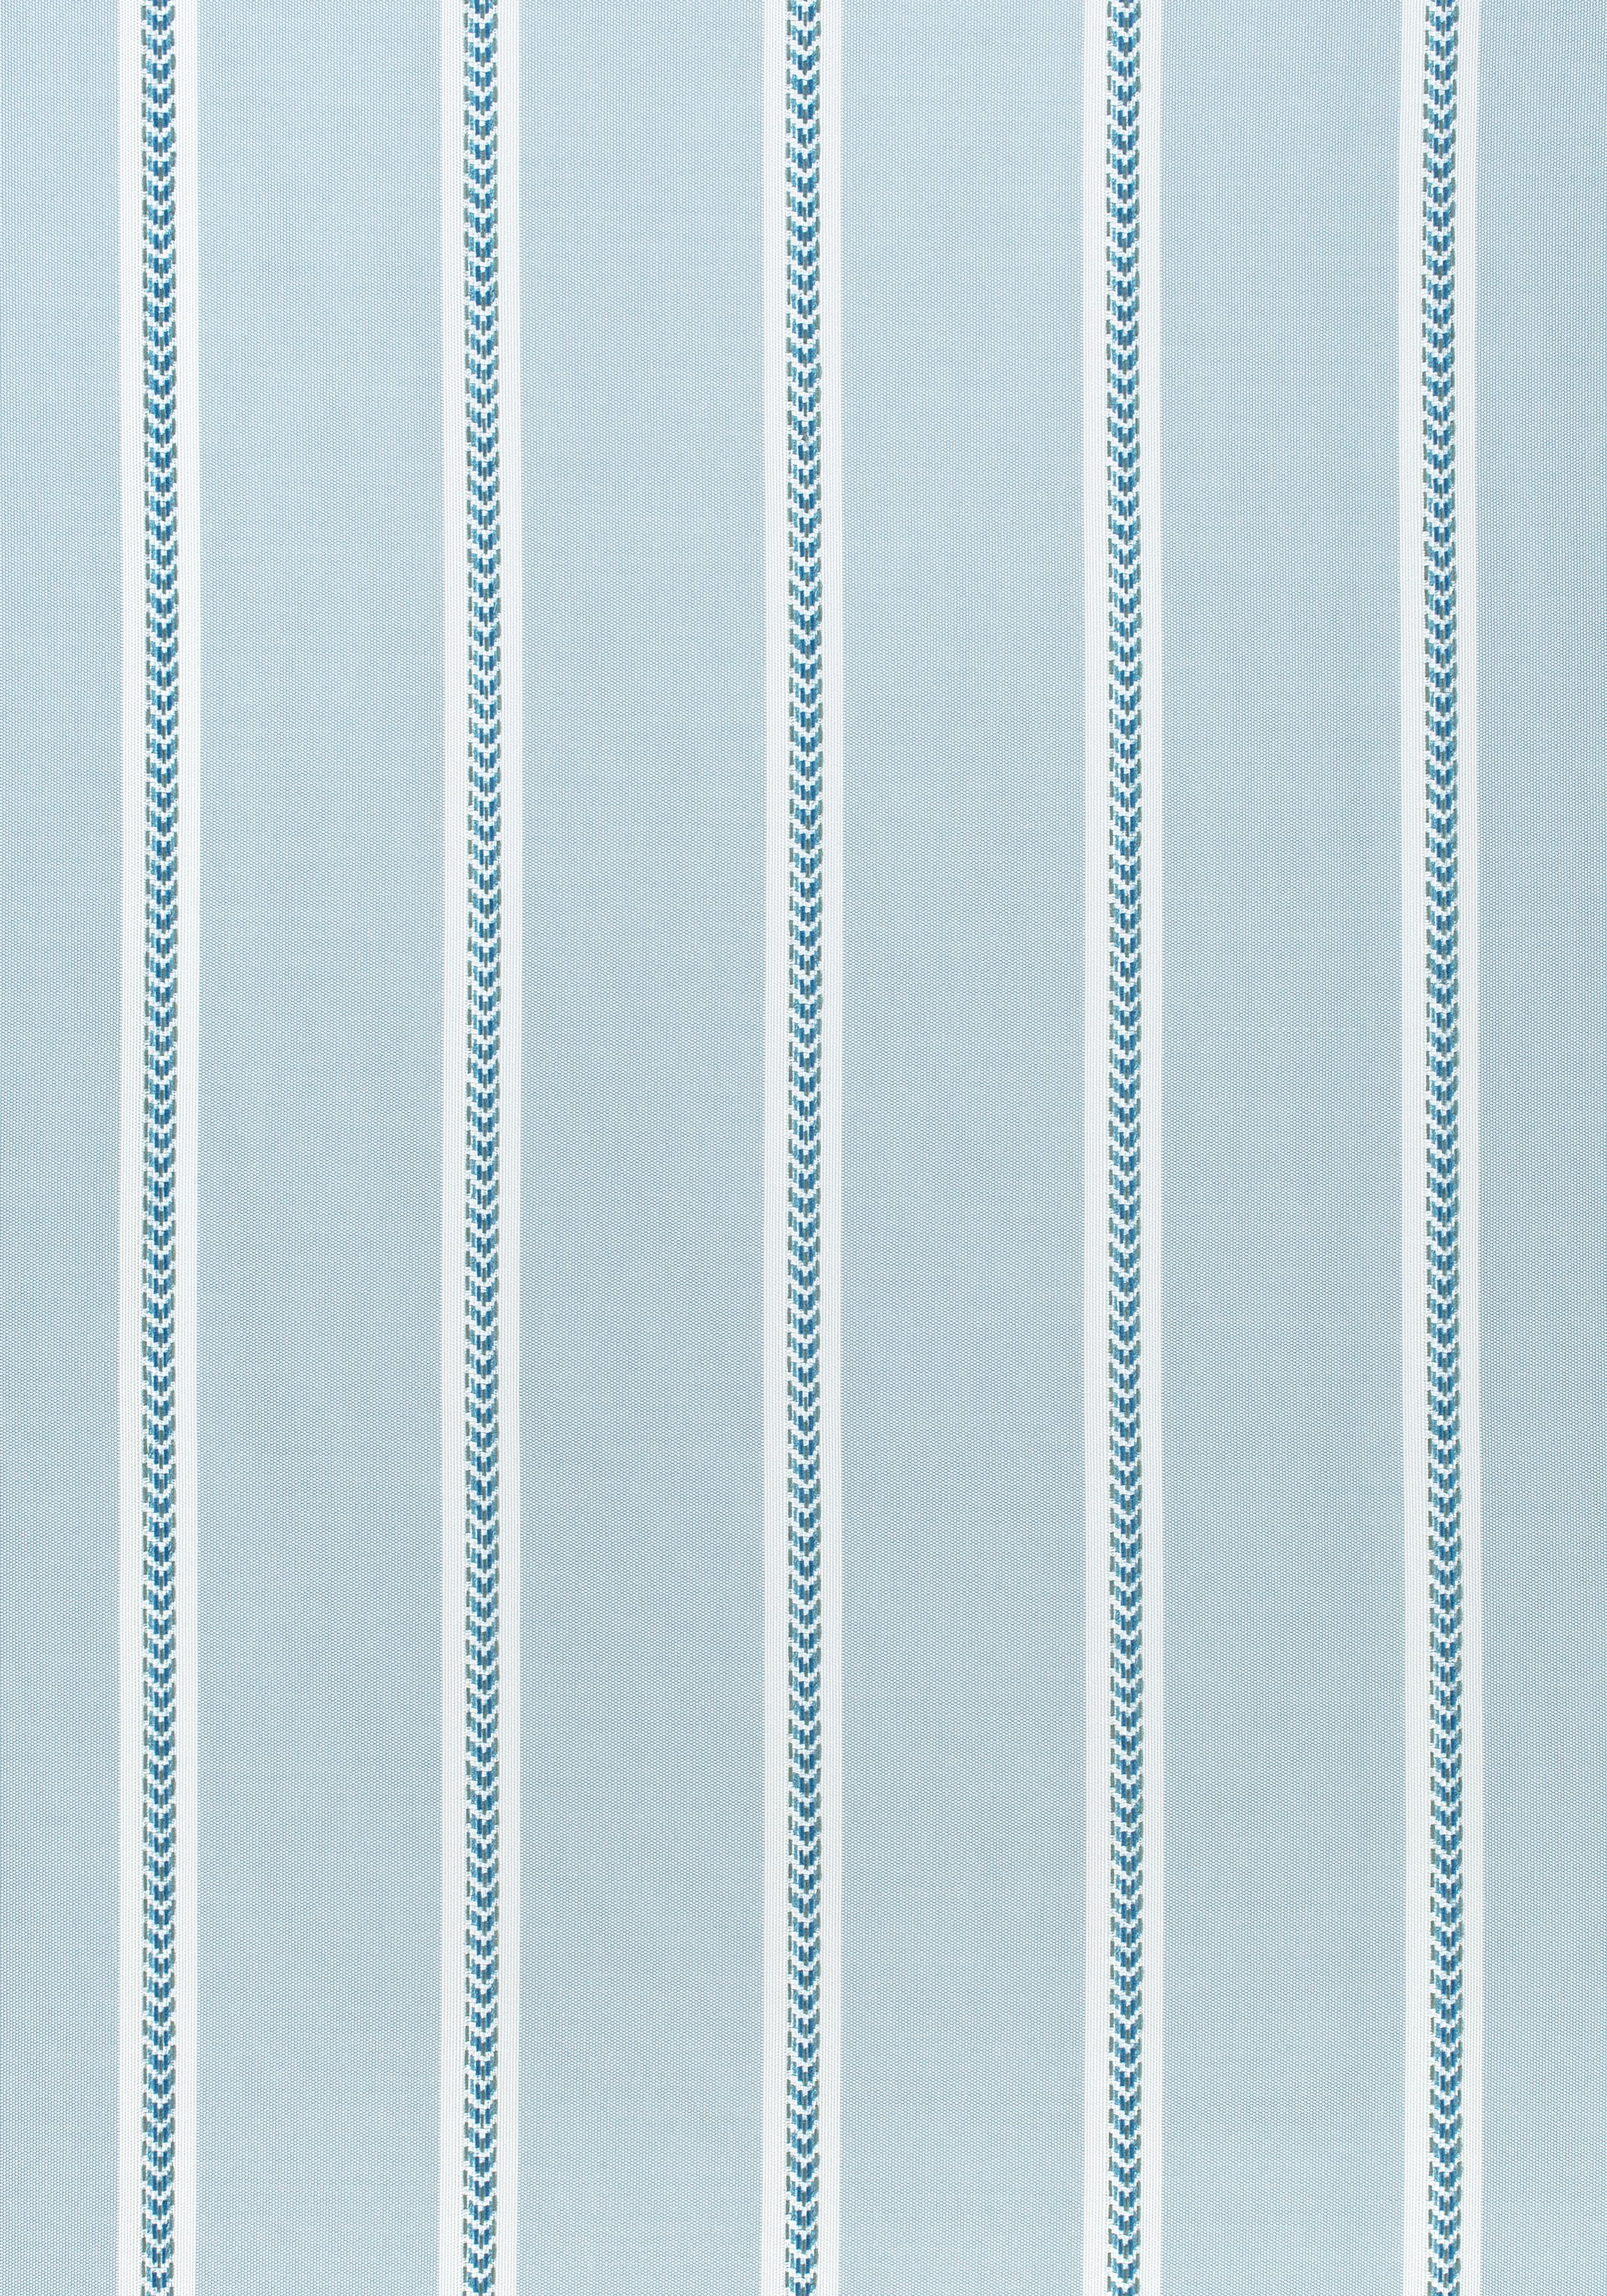 Saybrook Stripe Mineral And Spa W80788 Collection Solstice From